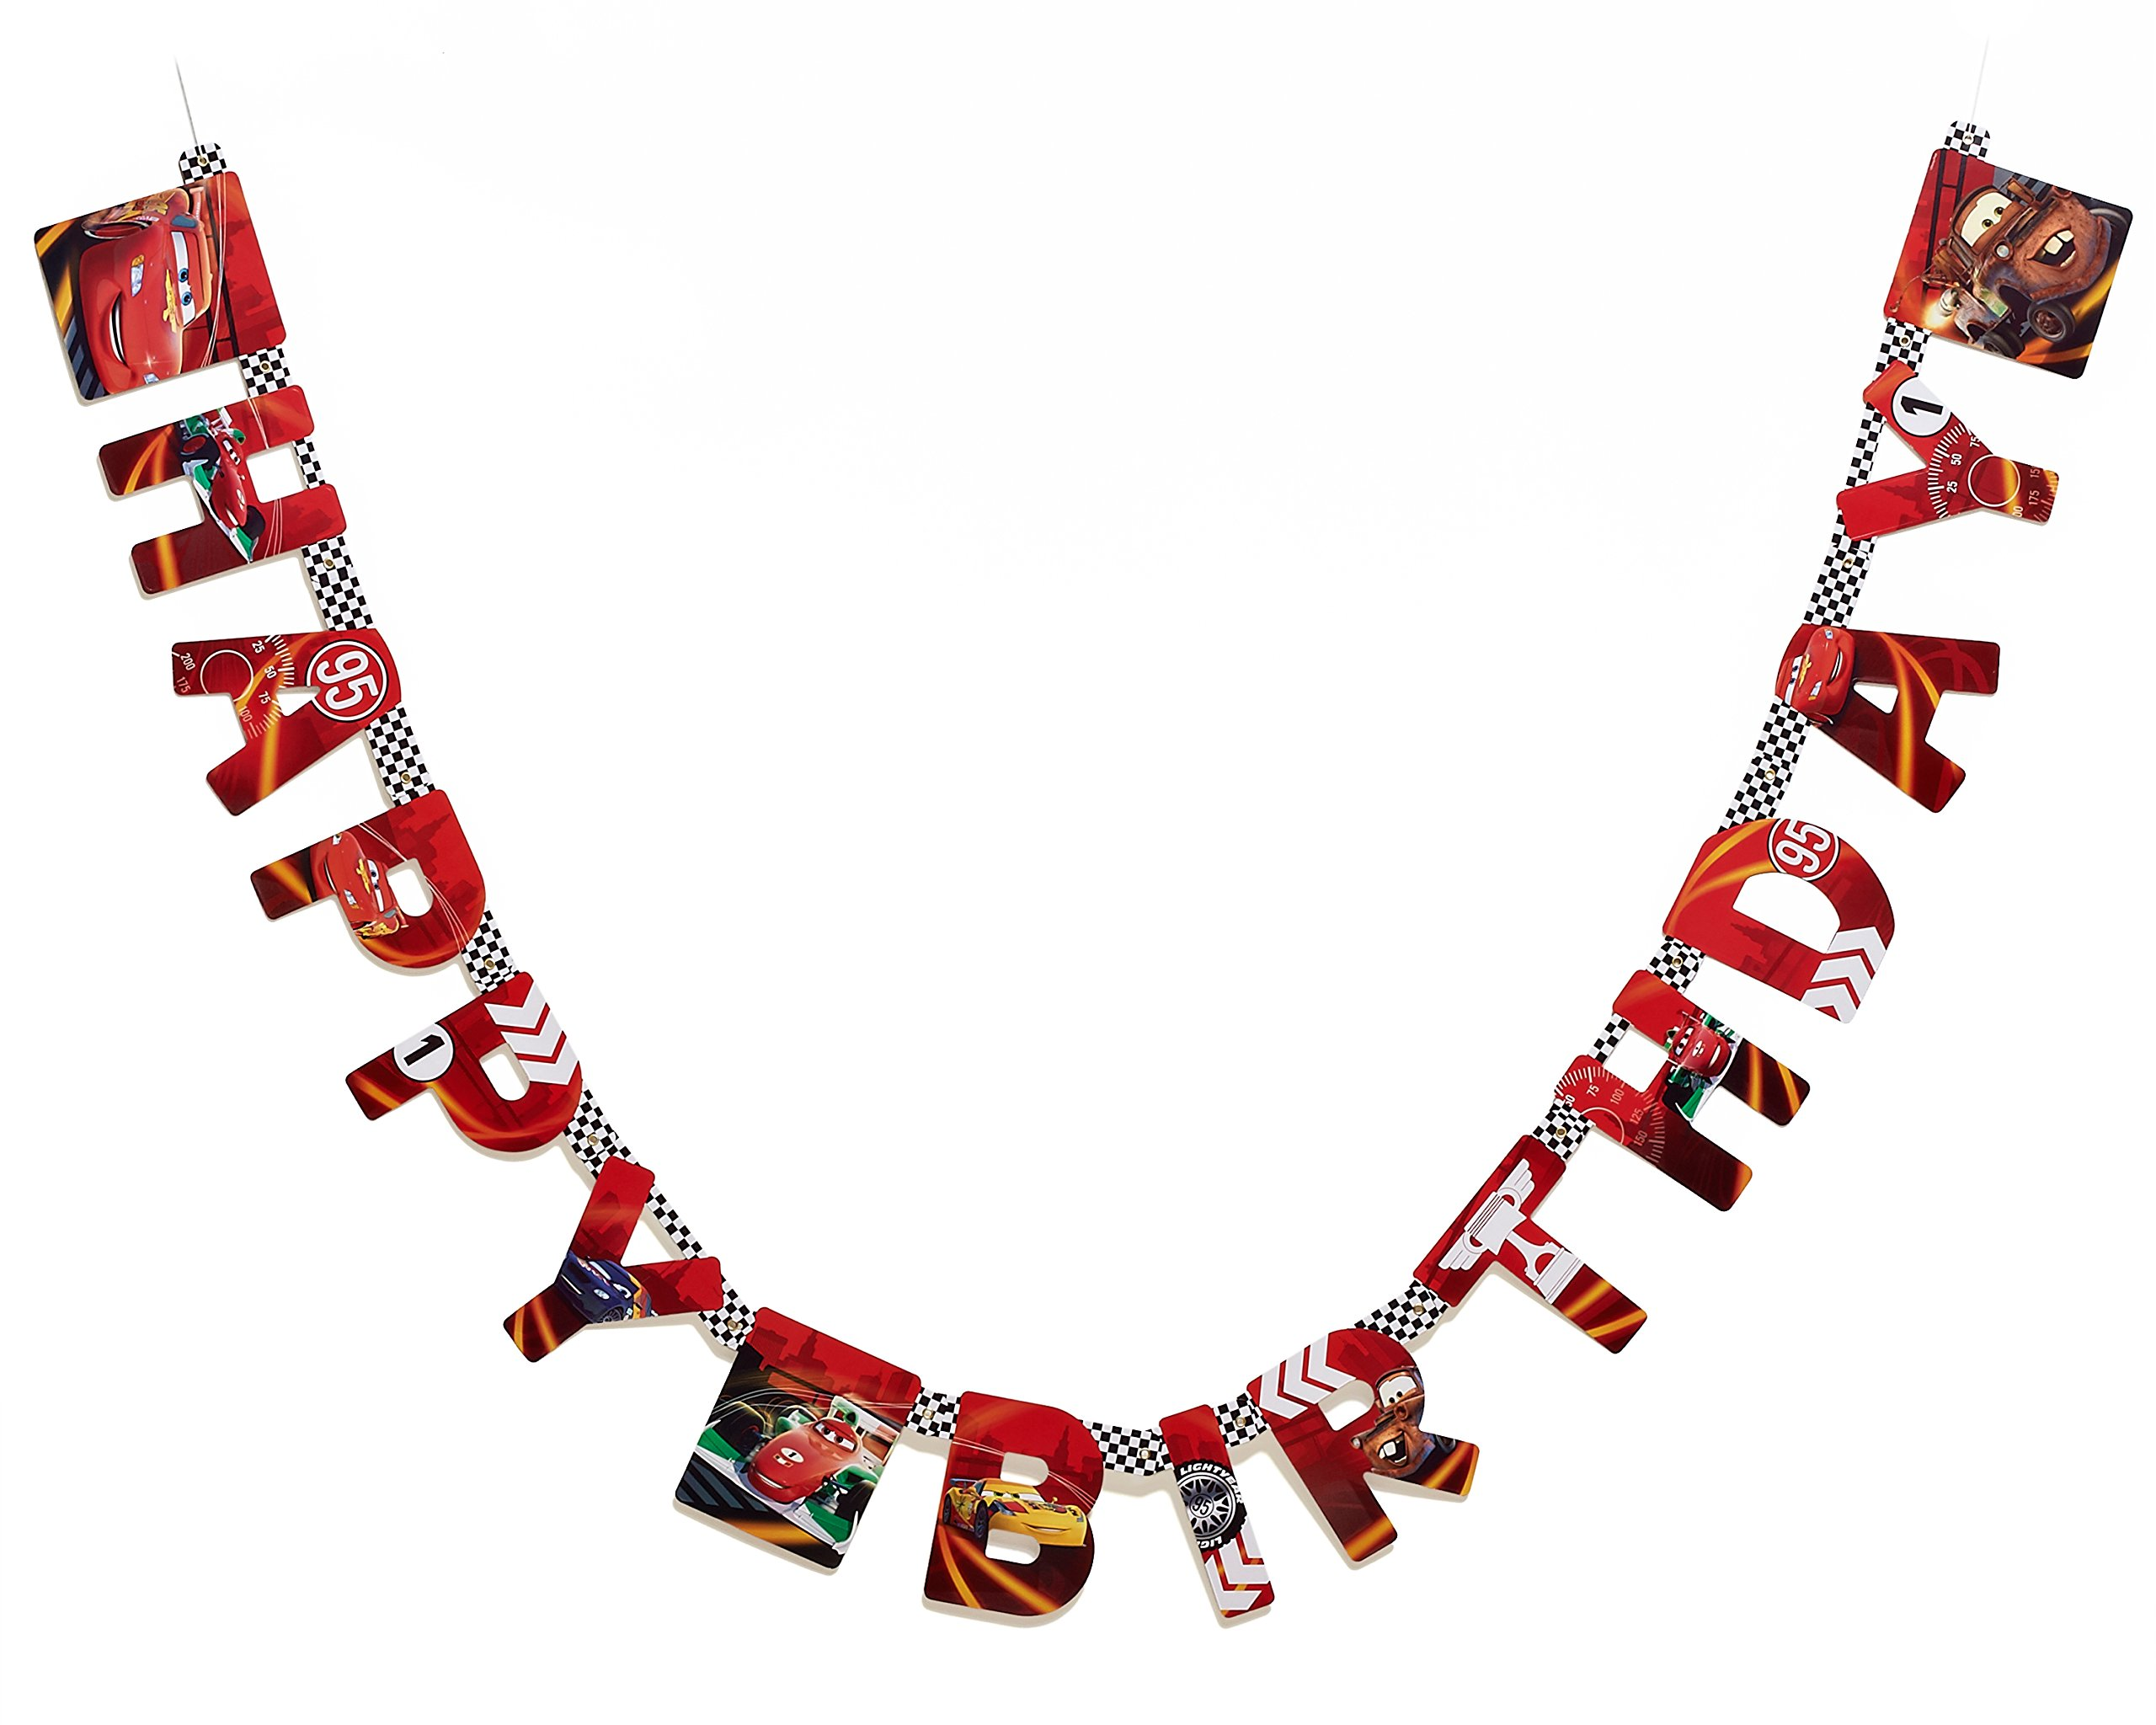 Designware Cars Birthday Party Banner, Party Supplies